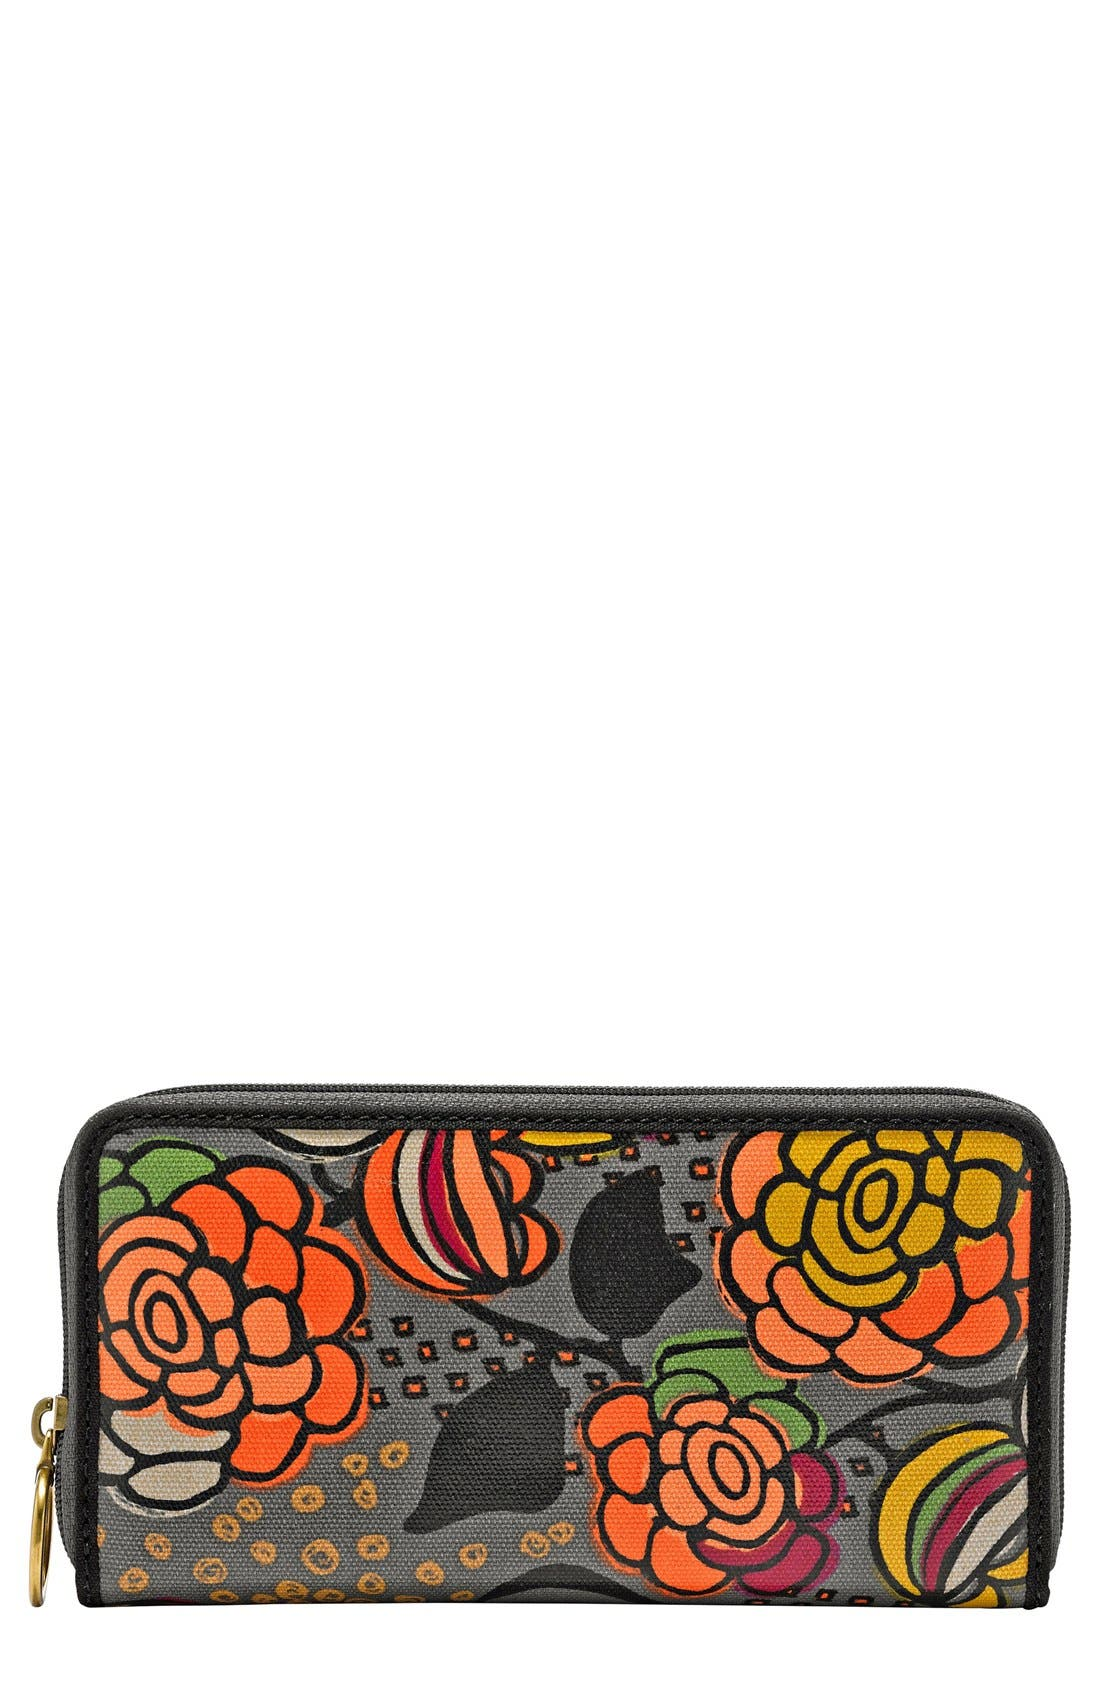 Main Image - Fossil 'Key-Per' Print Coated Canvas Zip Around Clutch Wallet